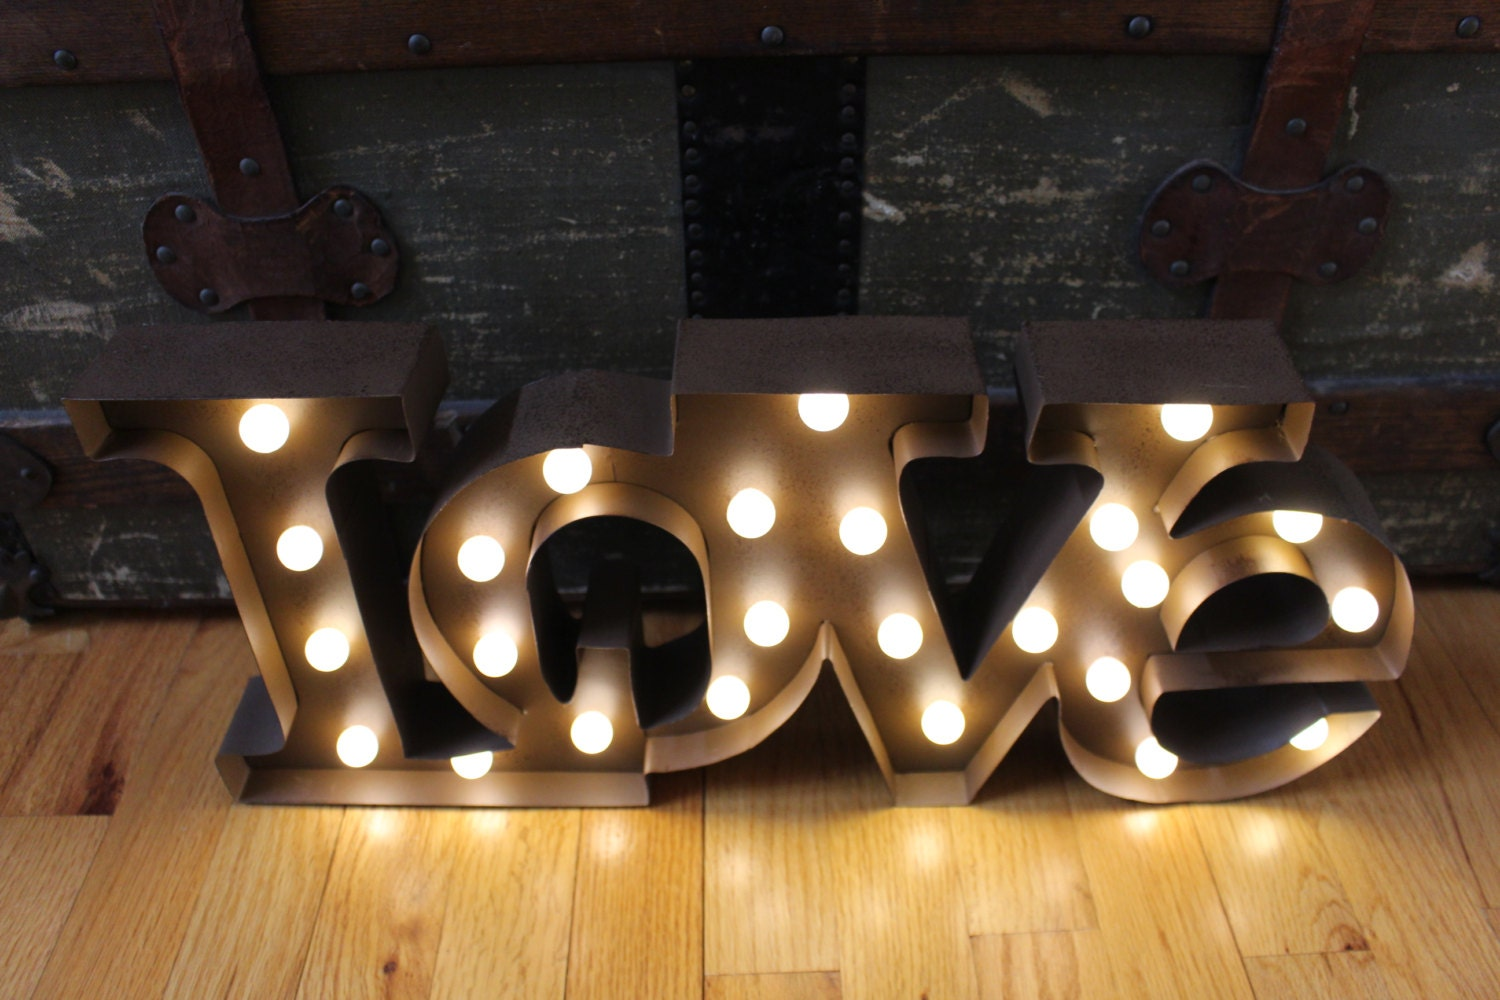 lighted love marquee signmetal letterrustic weddingvintage home decorphoto propindustrial signwedding love signlighted wedding sign